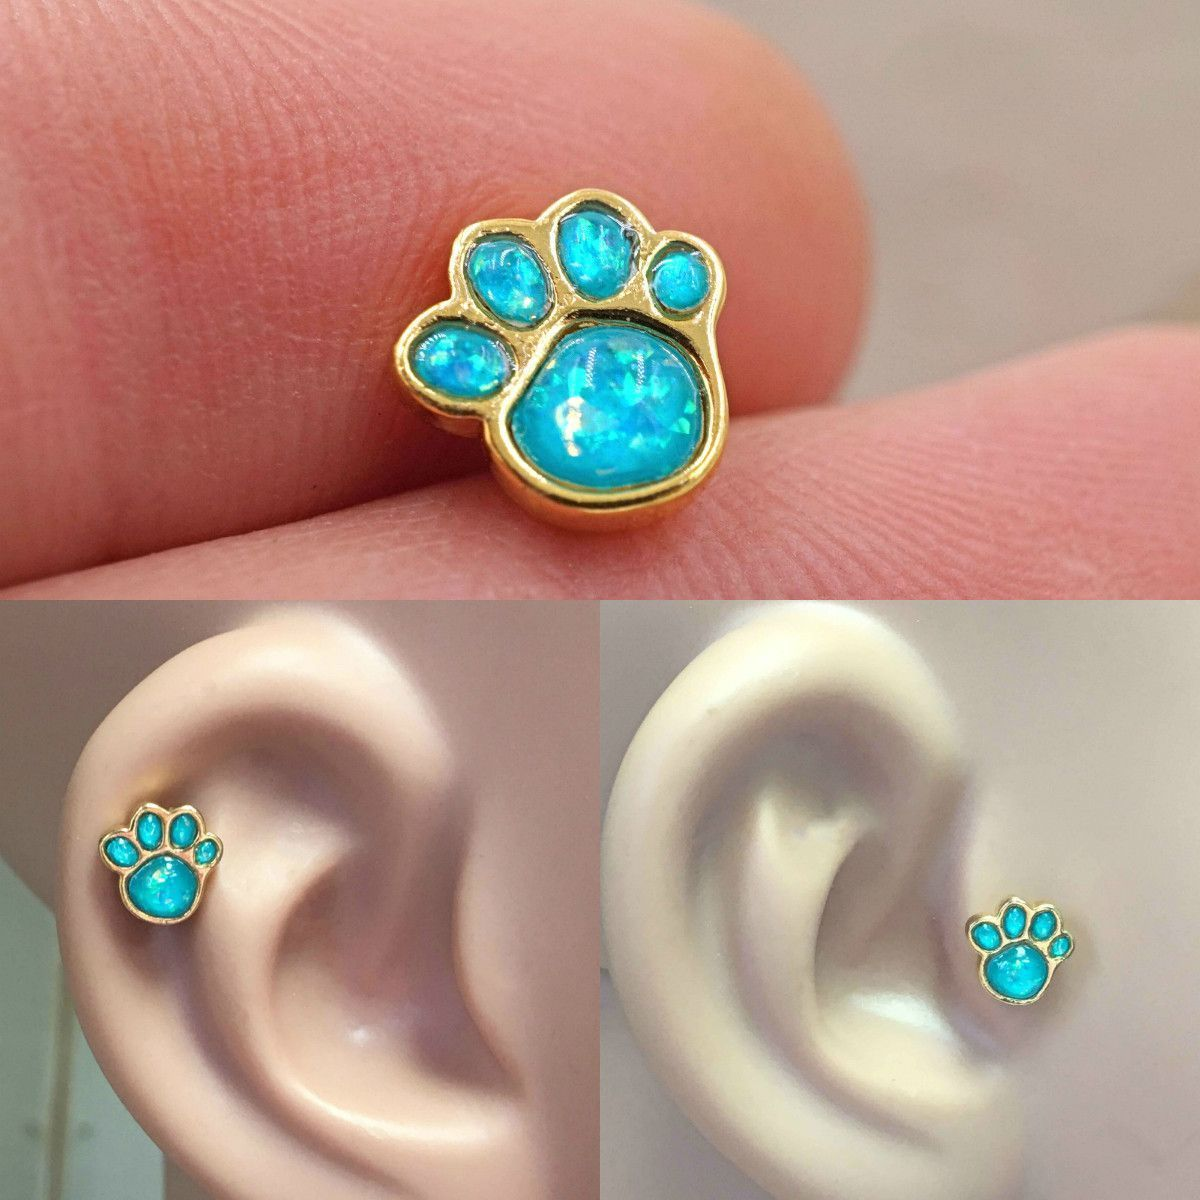 Animal paw print gold cartilage earring, or helix piercing